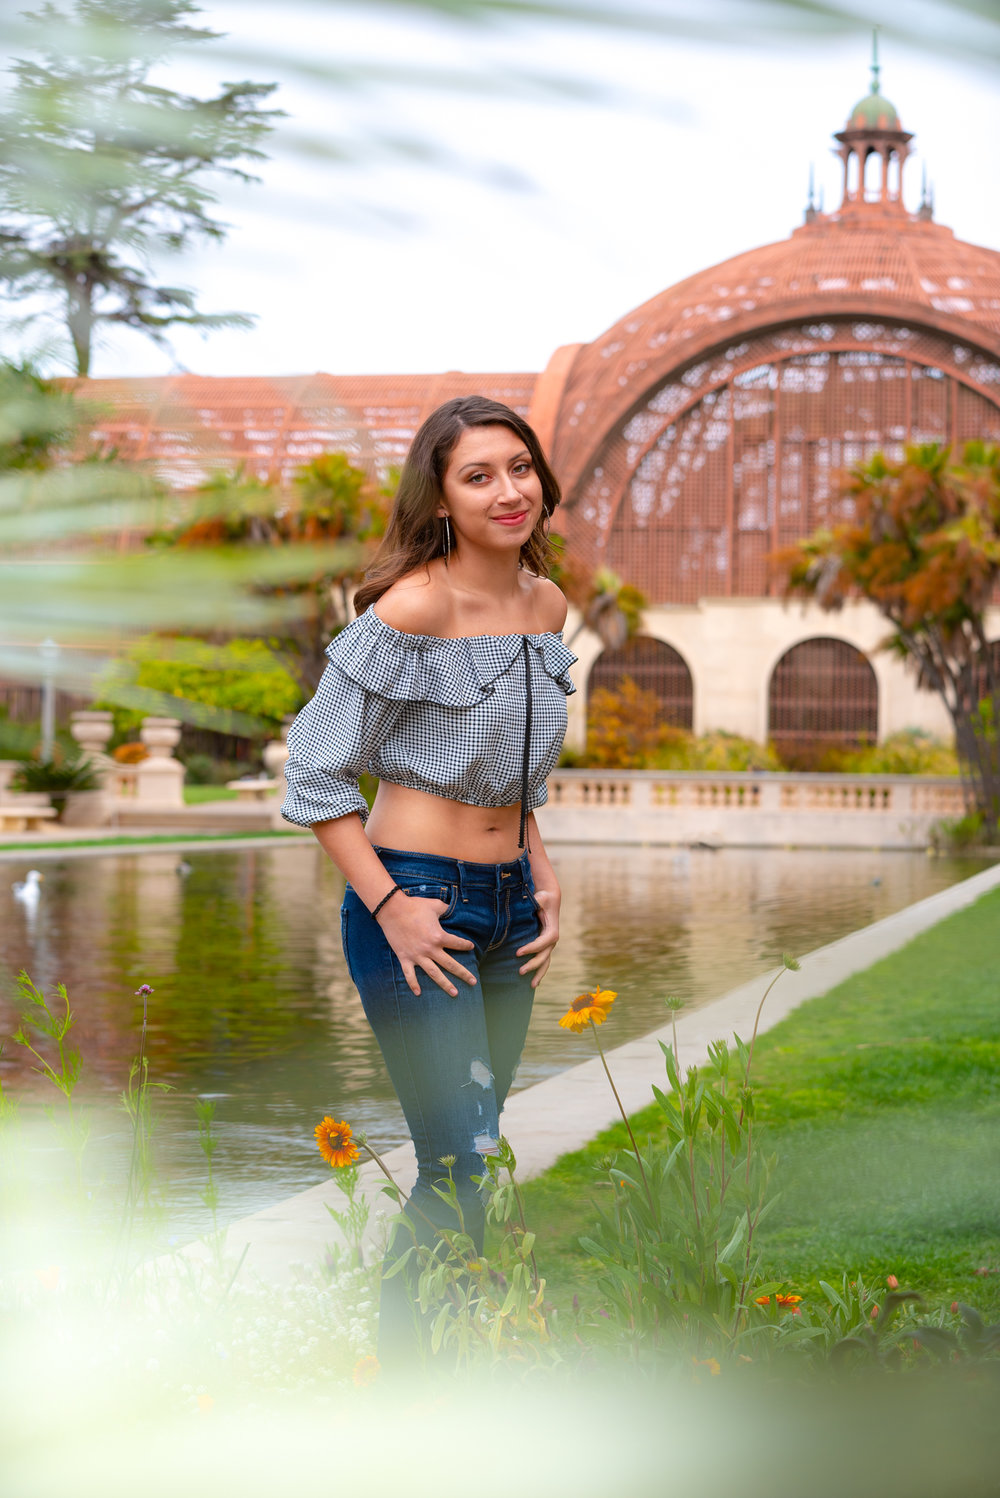 Standard Session - 60 minute session including posed and candid looks + 1 outfit change. (ie. cap & gown, dress or casual outfit)Balboa Park, Presidio Park, the Beach or your University campus.Includes:15 digital images printable up to 11 x 14(5) 8 x 10 prints$420 (50% due at booking)